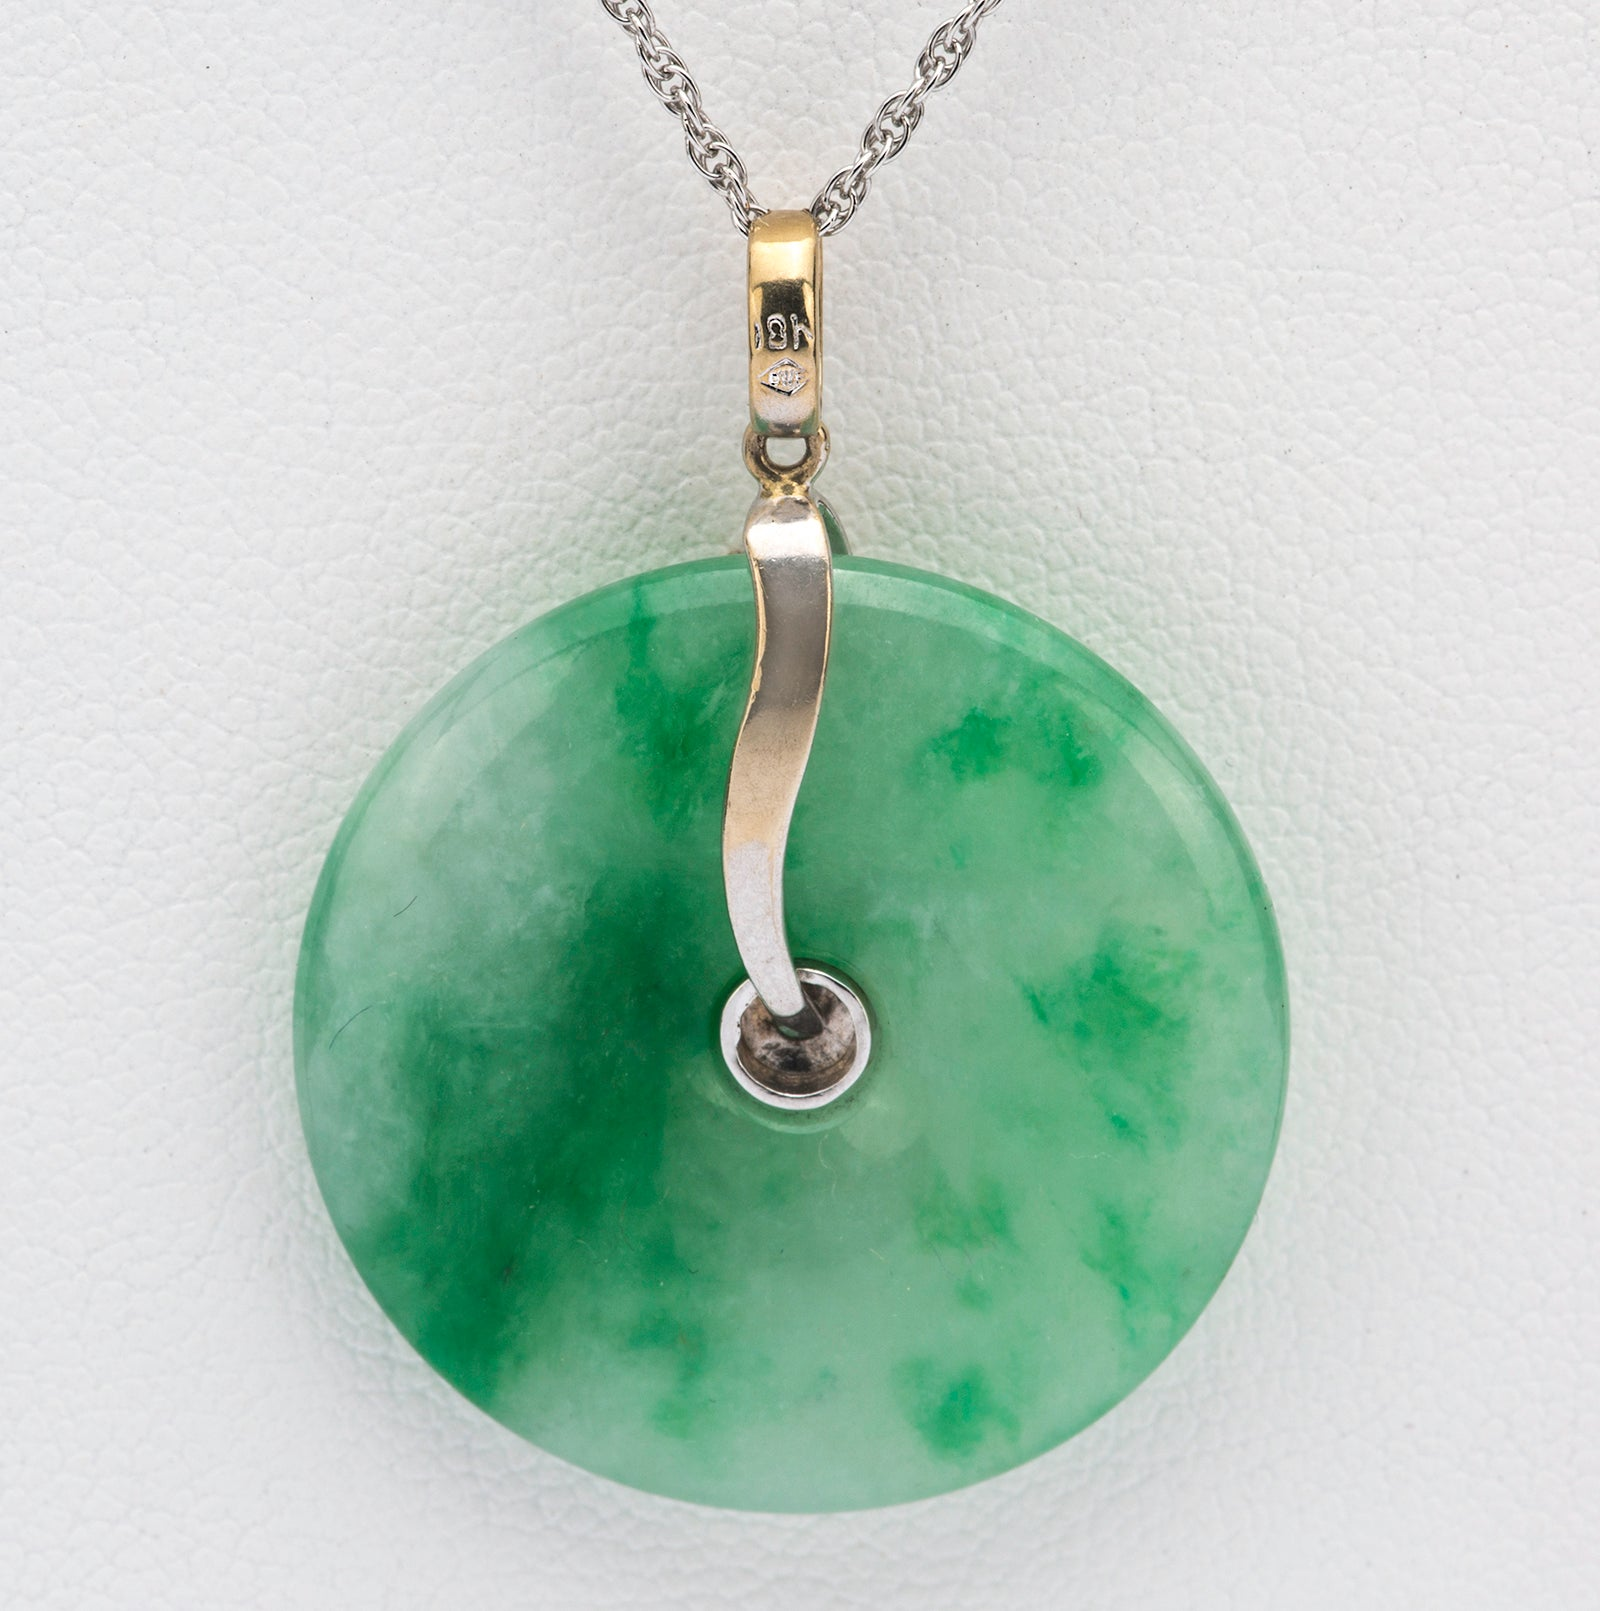 qi lin the pendant necklace waist jade product store